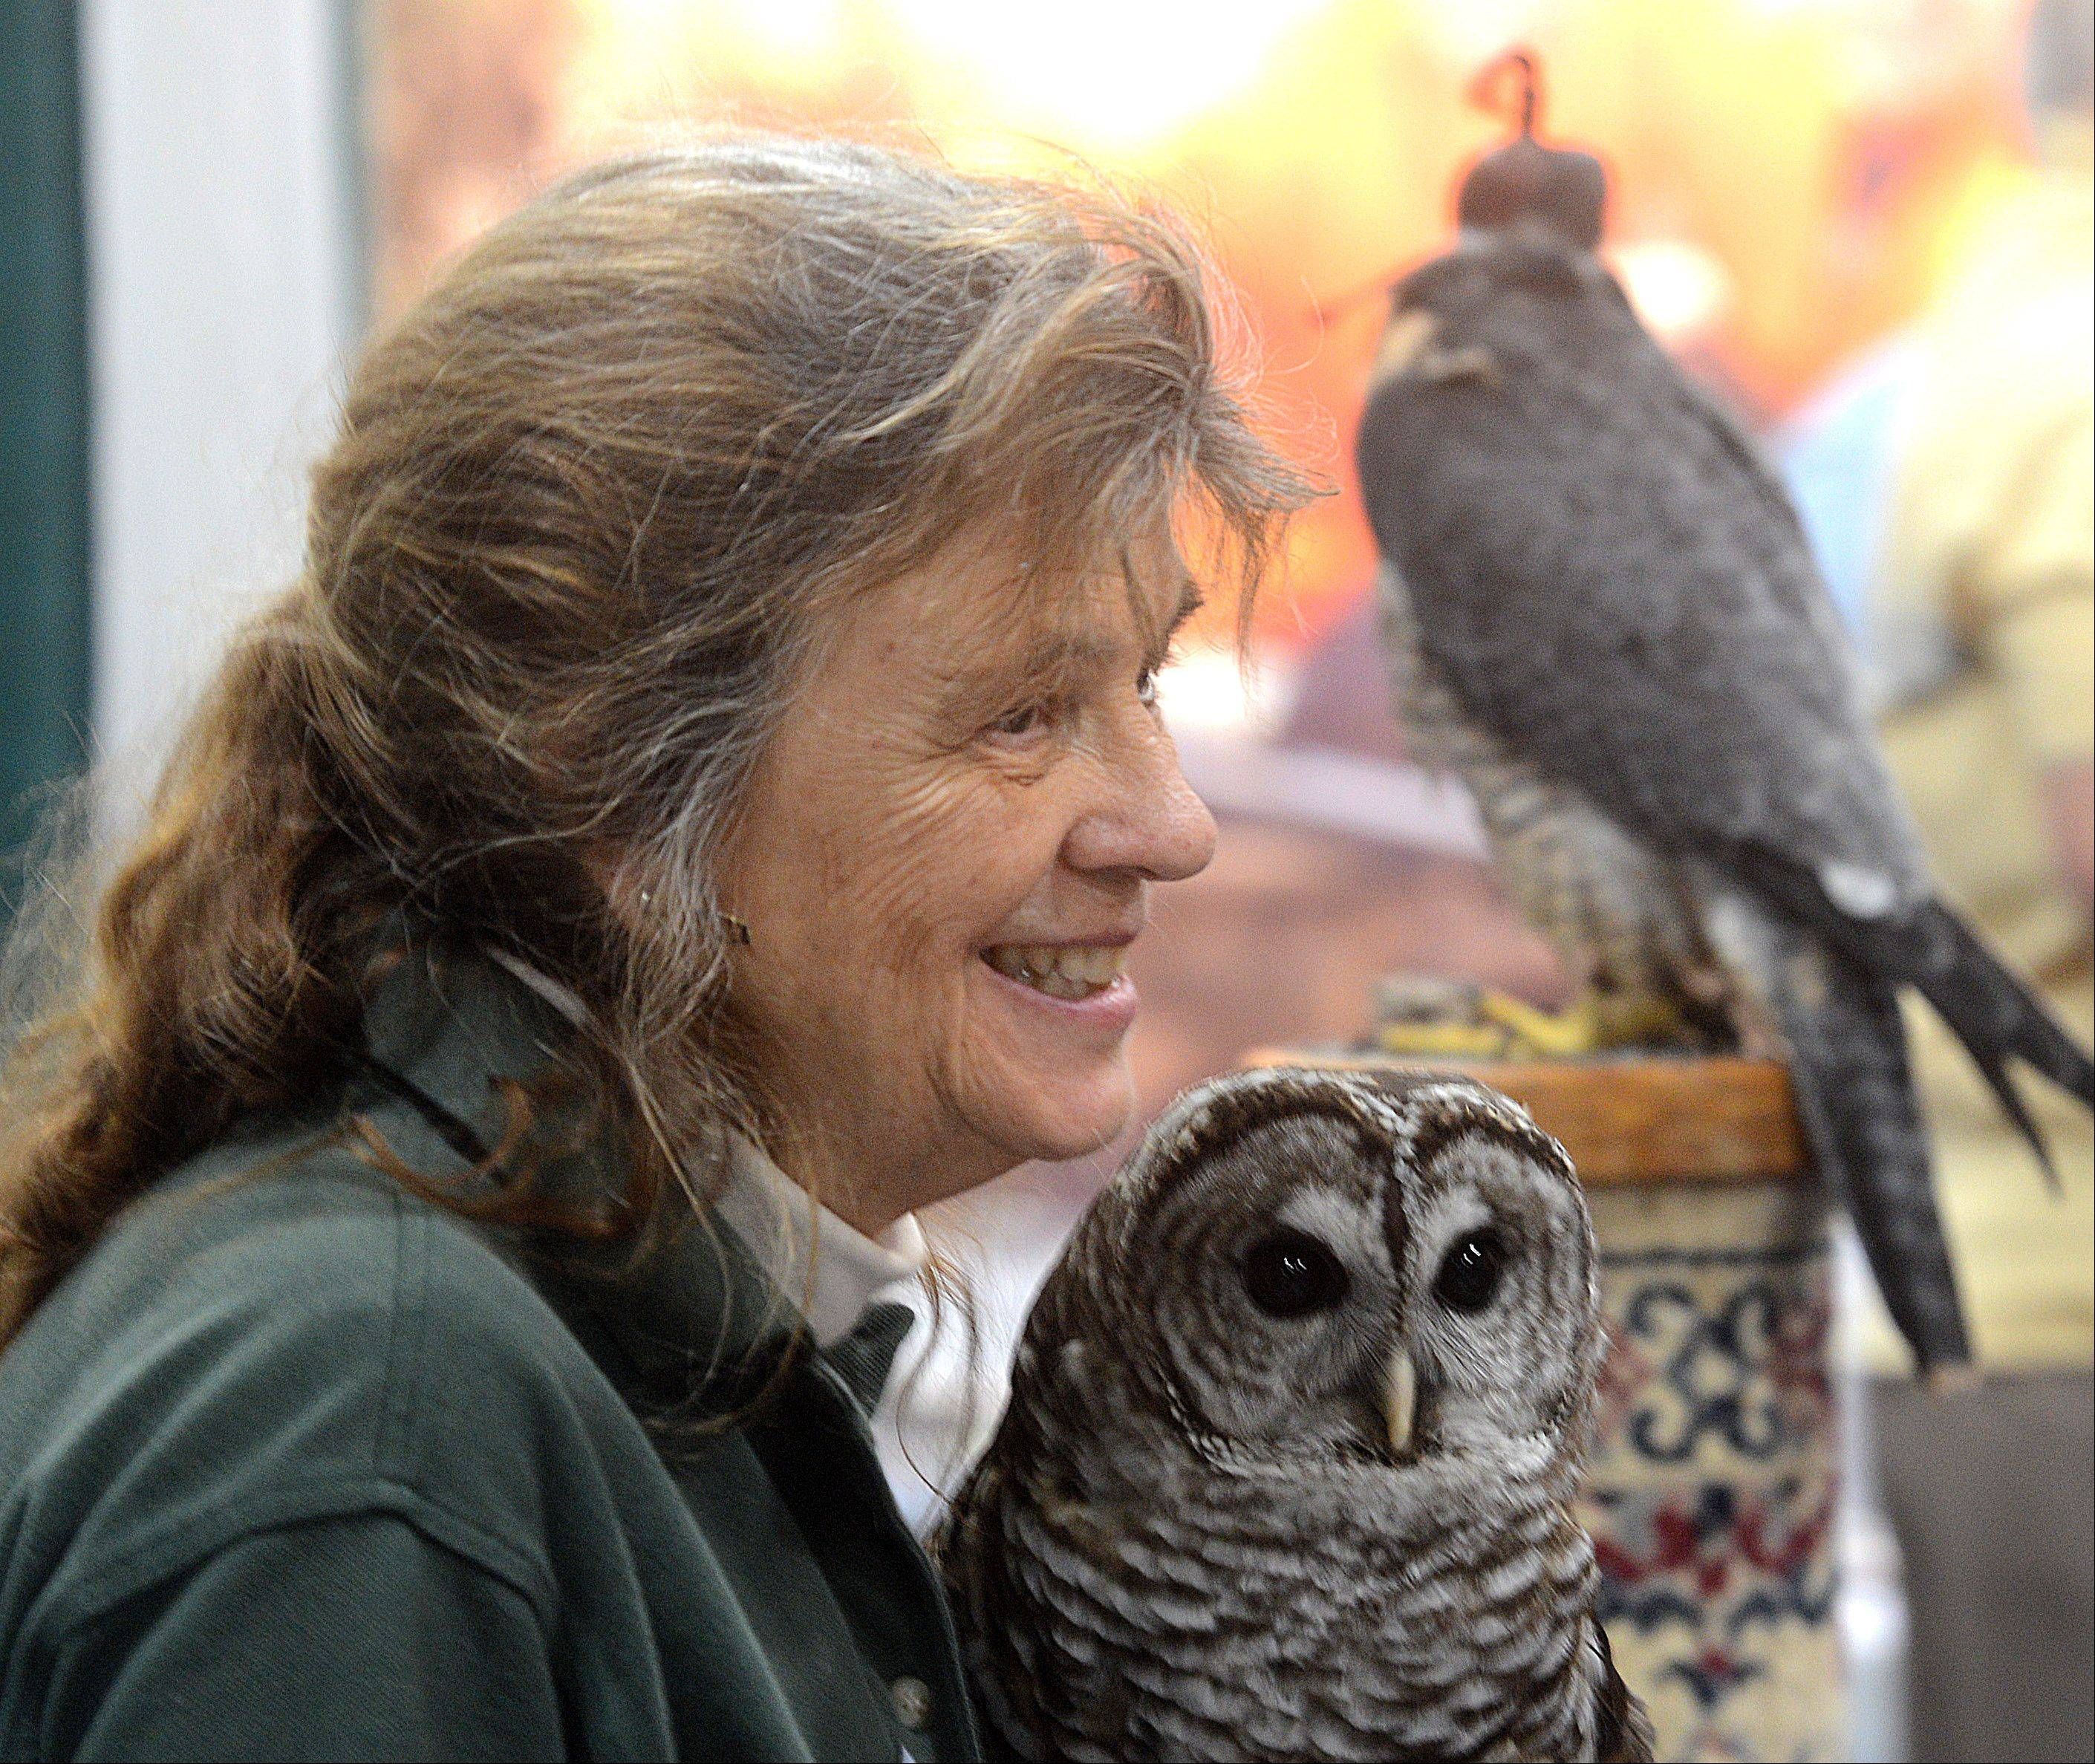 Barbara Schmidt, co-founder of The Northern Illinois Raptor Center, speaks to visitors about the barred owl she is holding during the Chicagoland Fishing Travel & Outdoor Expo at Renaissance Schaumburg Hotel and Convention Center. Behind her is a peregrine falcon.